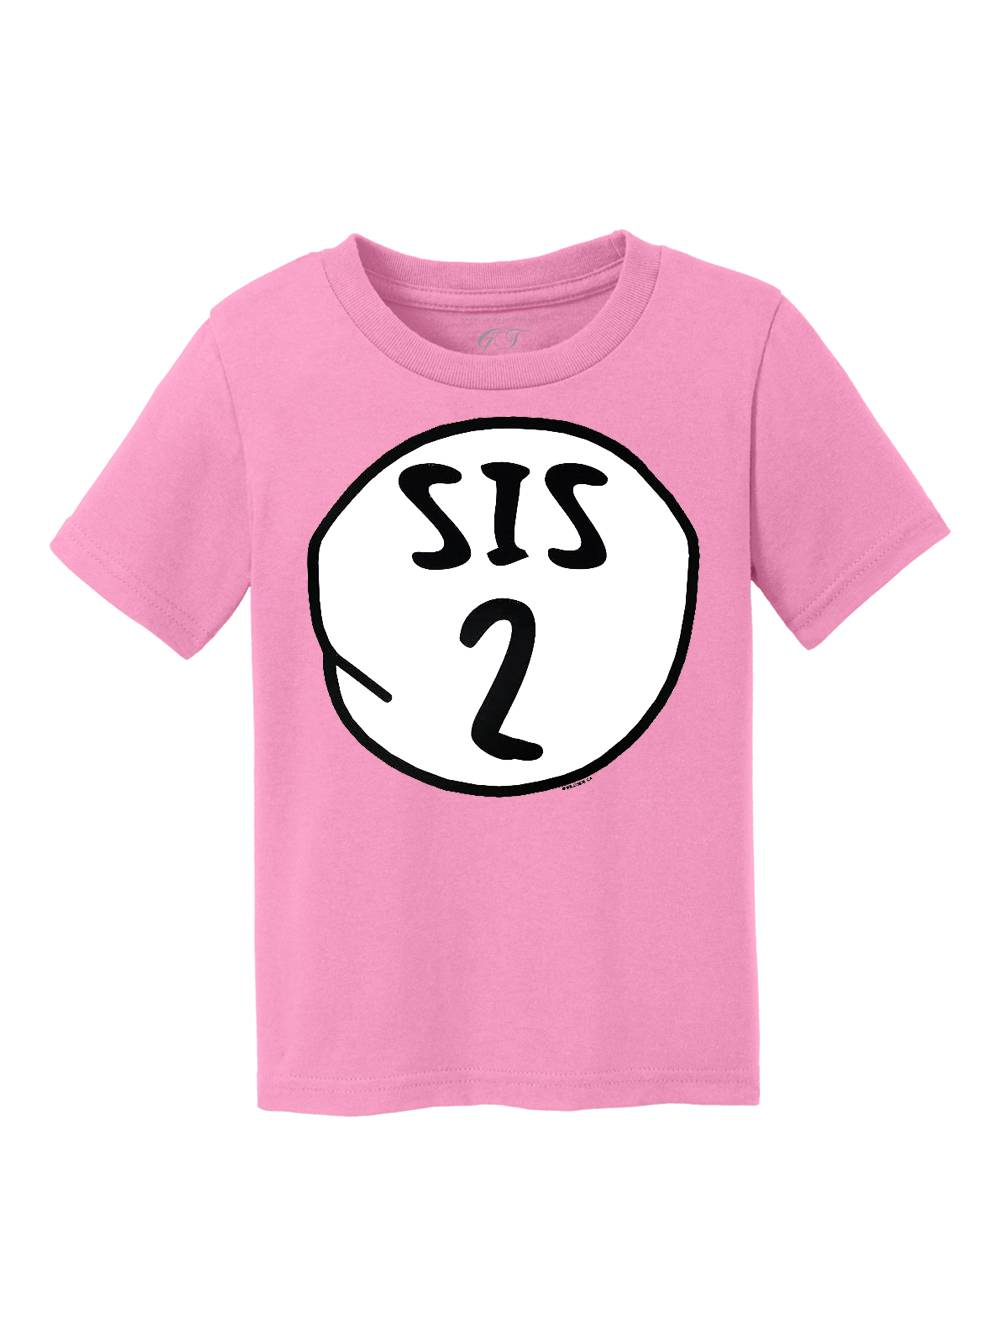 Youth Sis 2 Thing Short-Sleeve T-Shirt